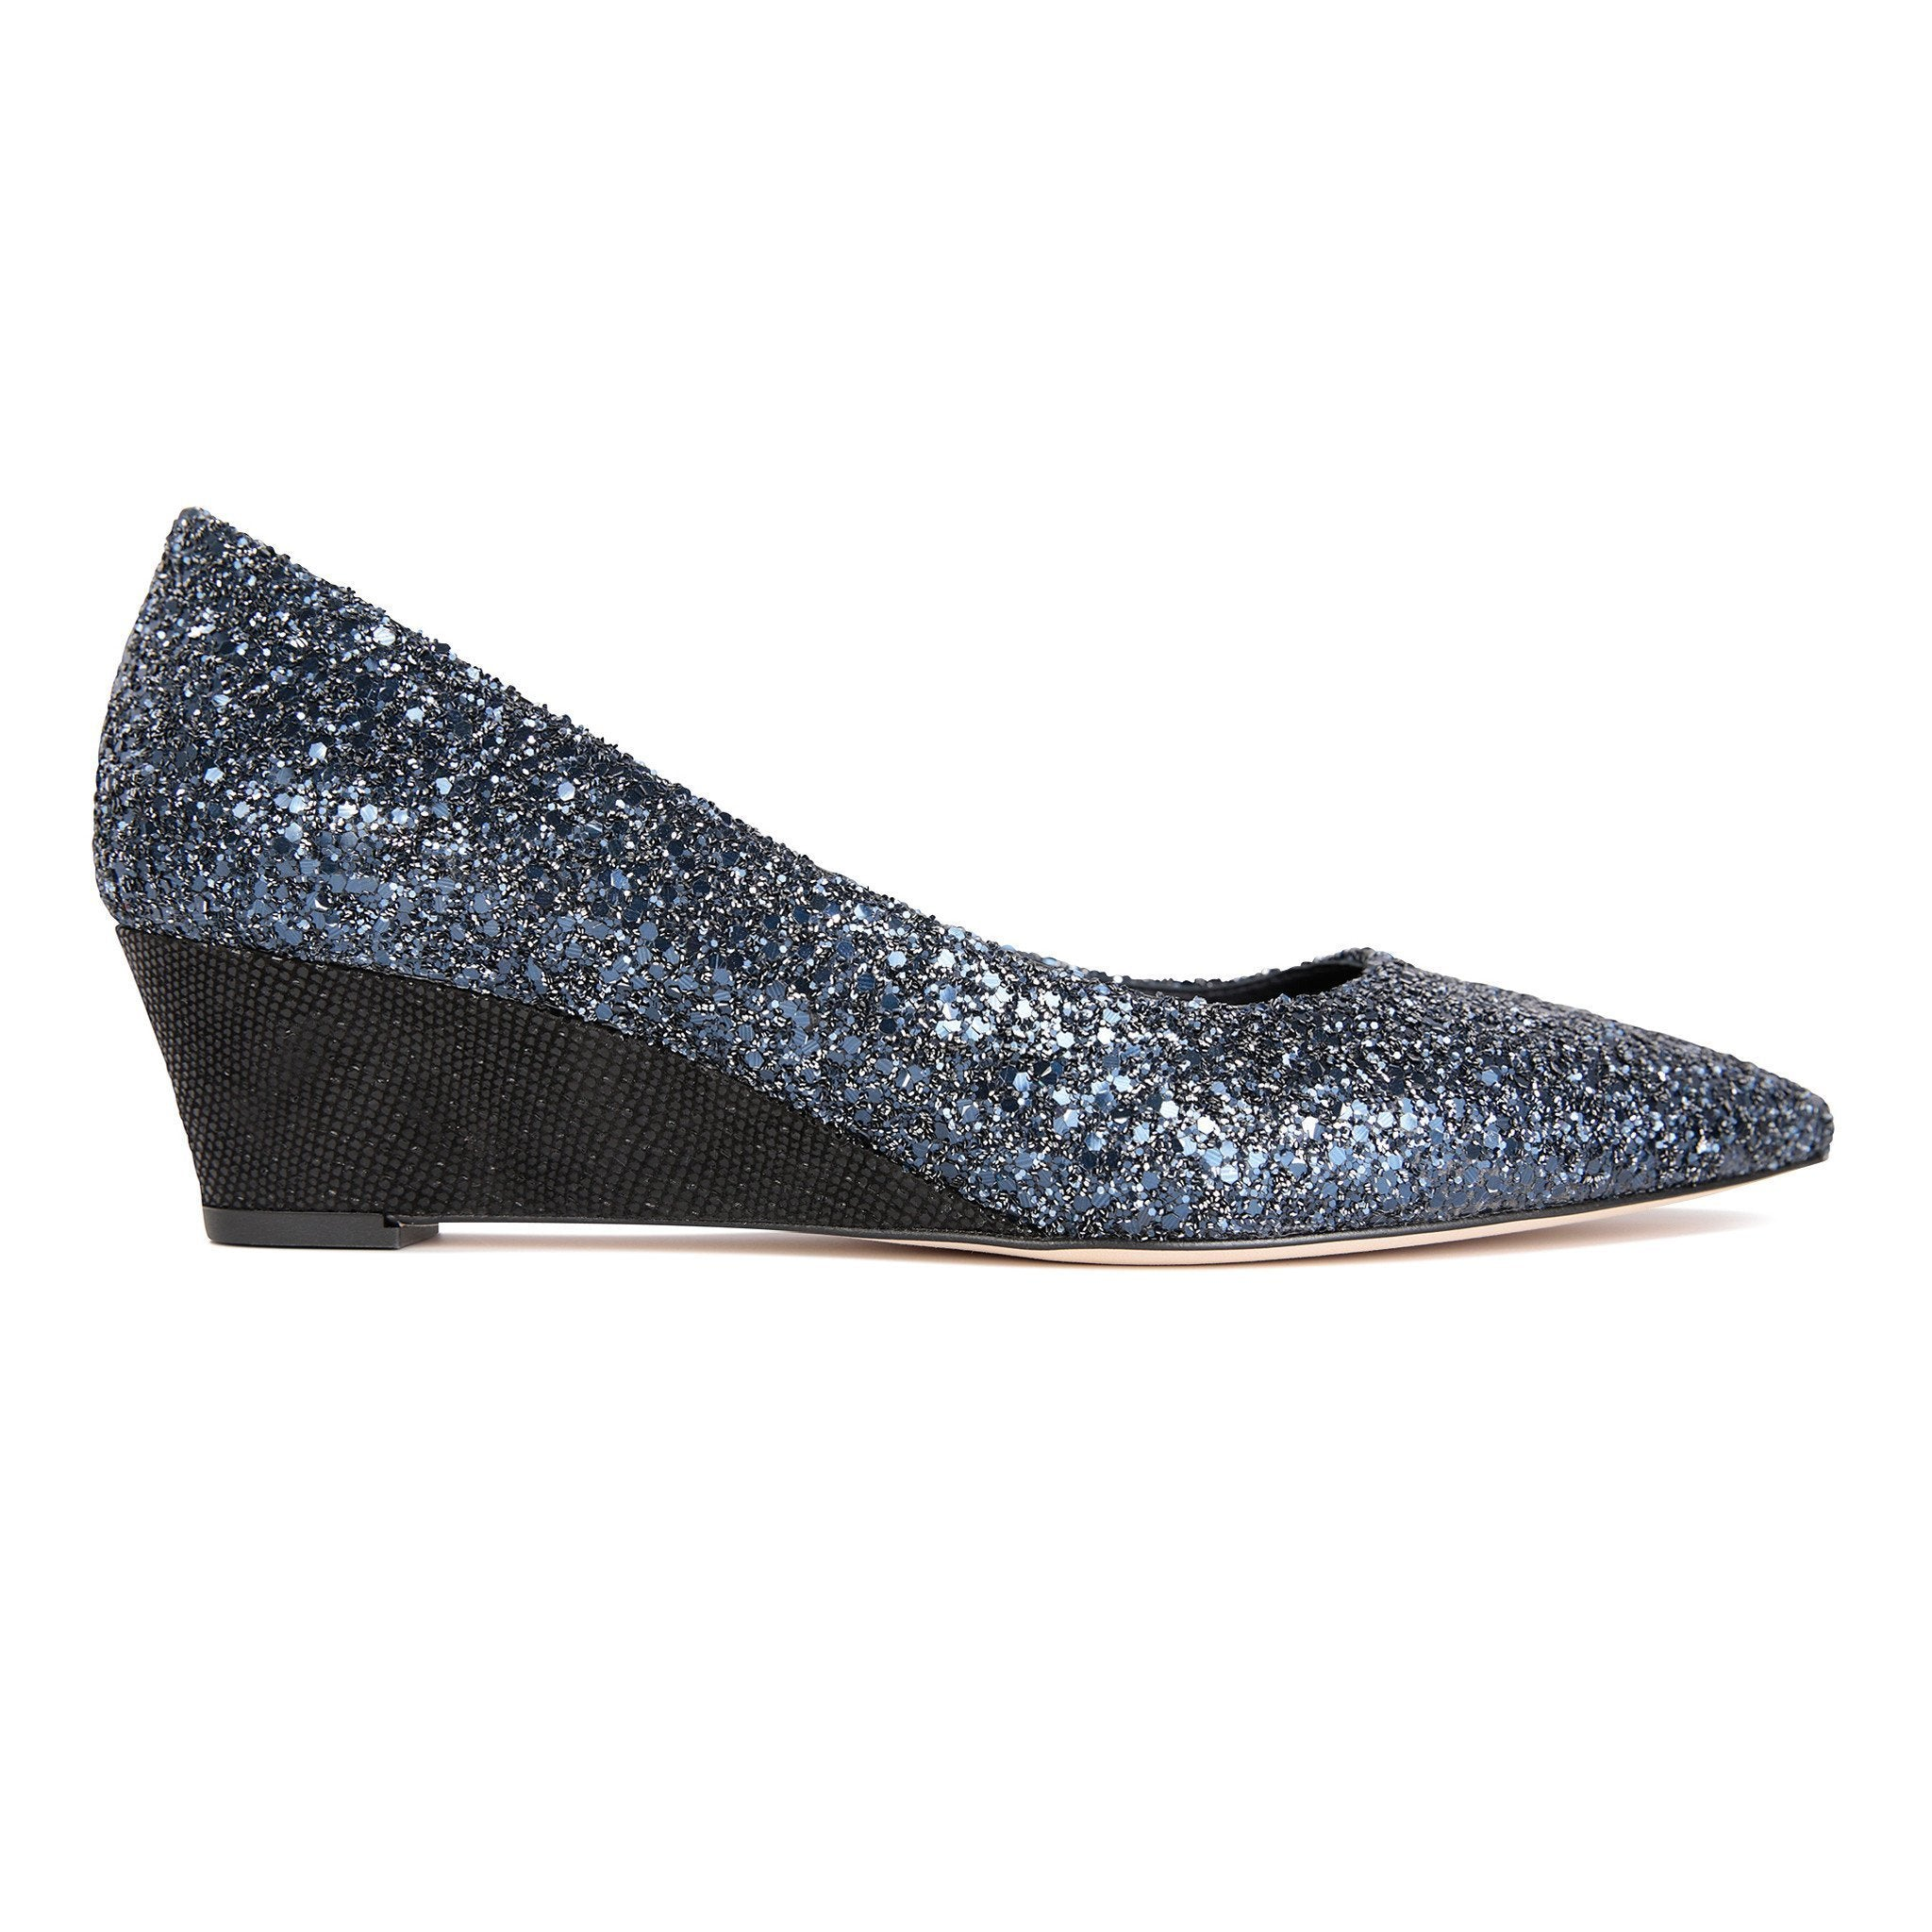 TRENTO - Glitter Midnight + Karung Nero, VIAJIYU - Women's Hand Made Sustainable Luxury Shoes. Made in Italy. Made to Order.